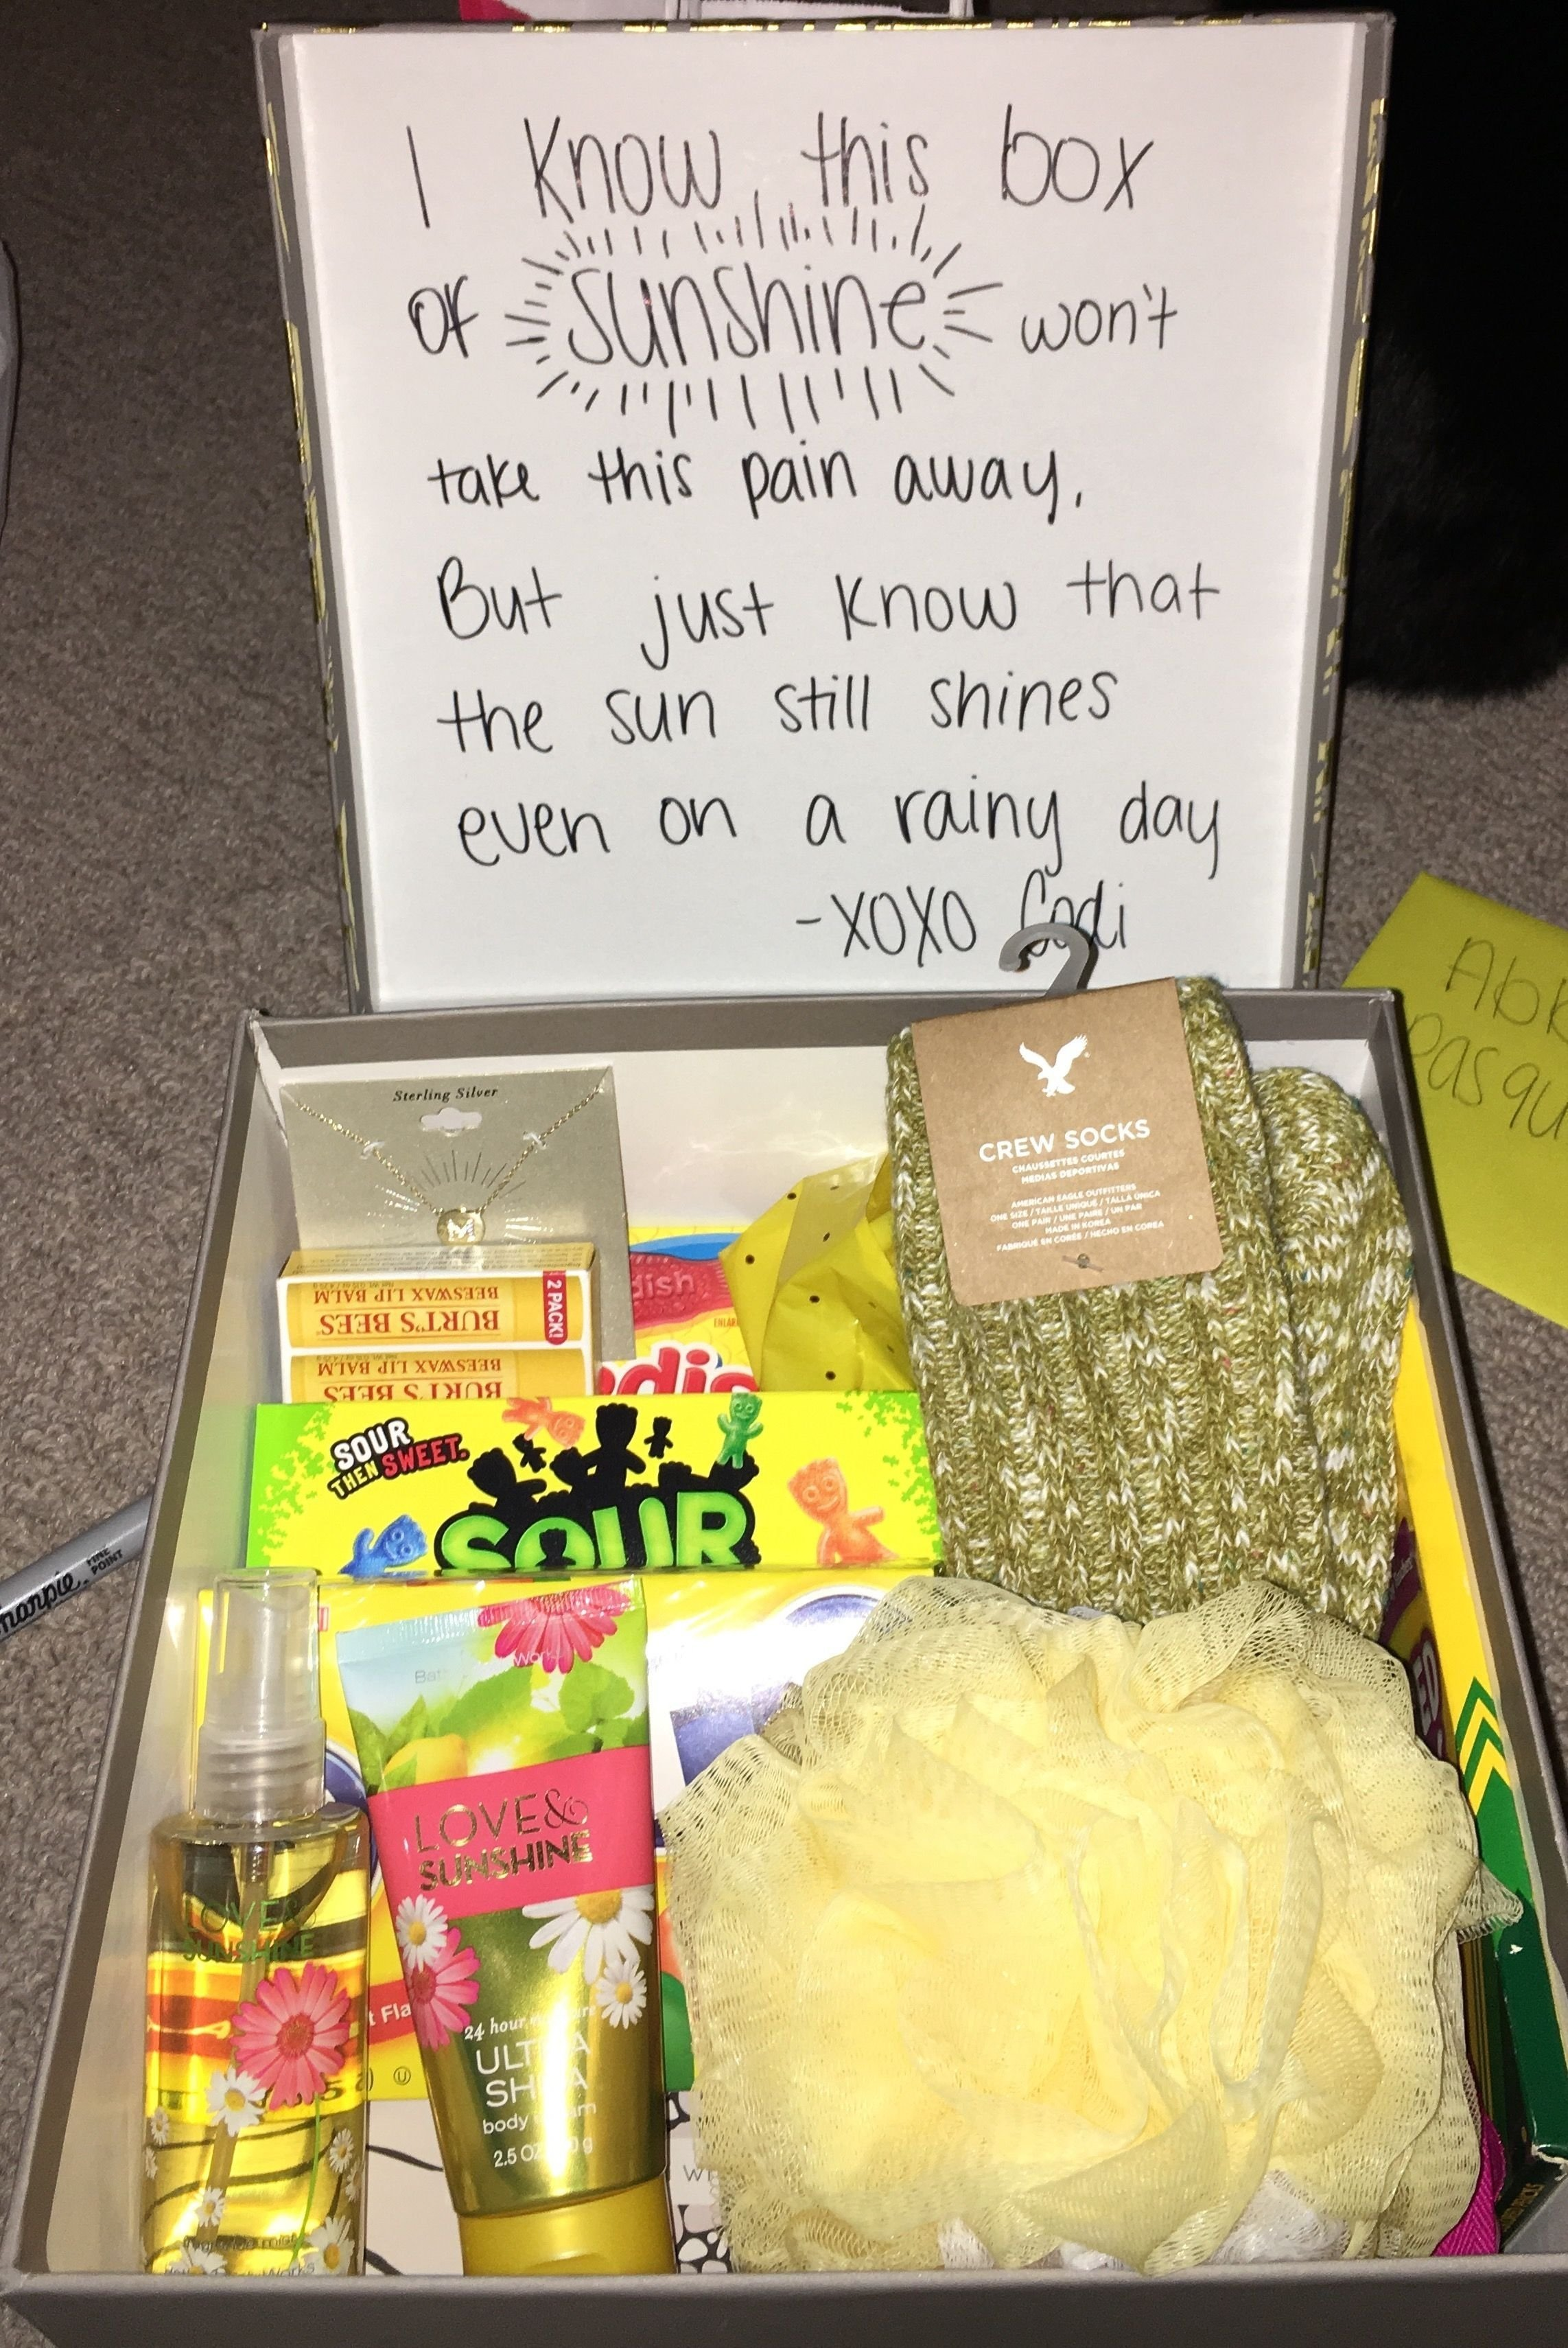 10 Great Birthday Gift Ideas For A Friend care package for grieving friend good idea pinterest gift 14 2020